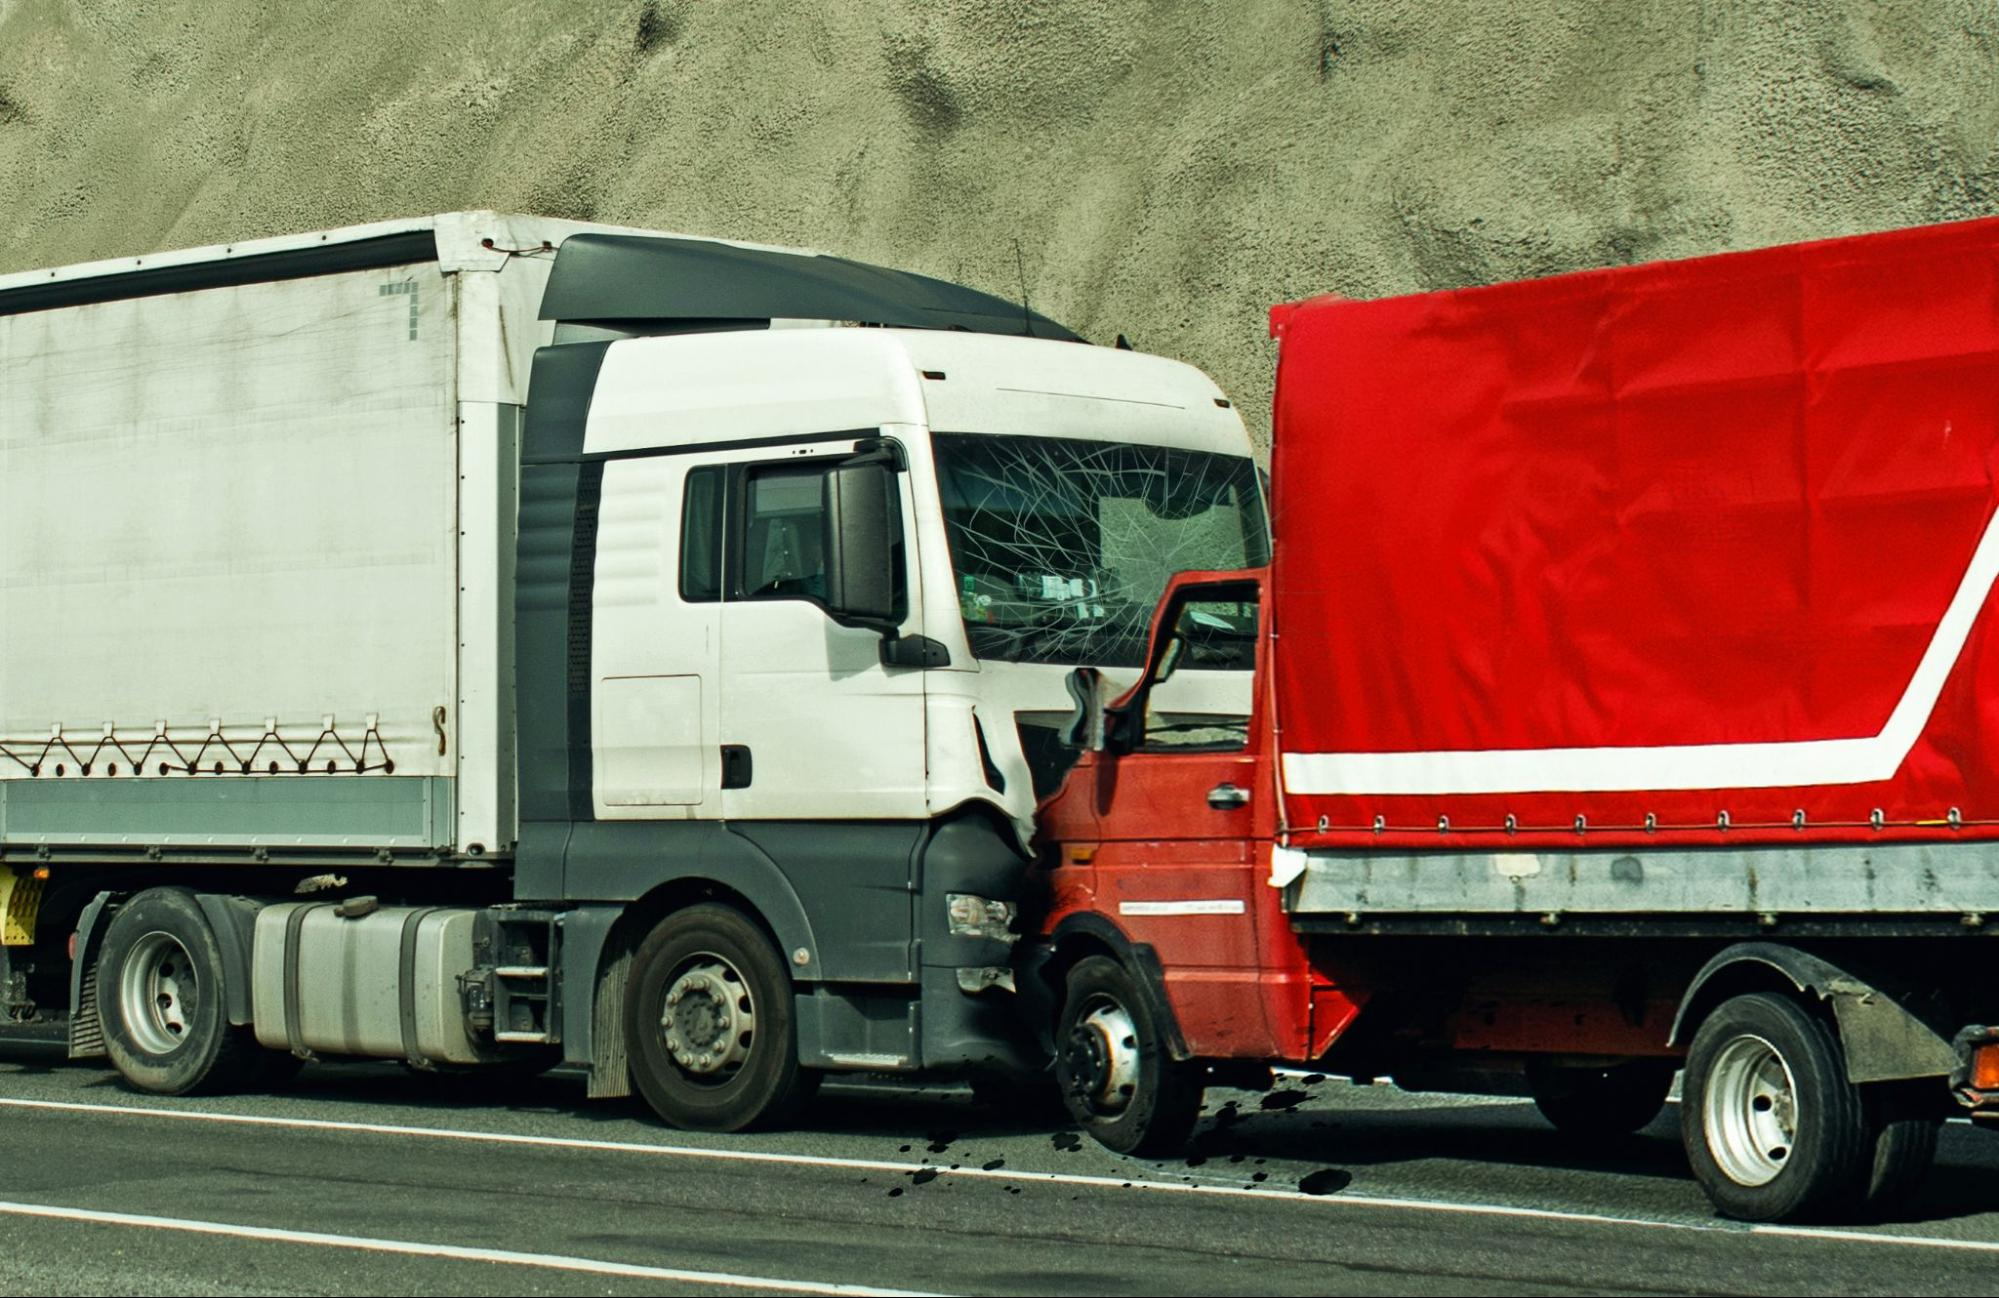 Two commercial trucks that got into a road accident